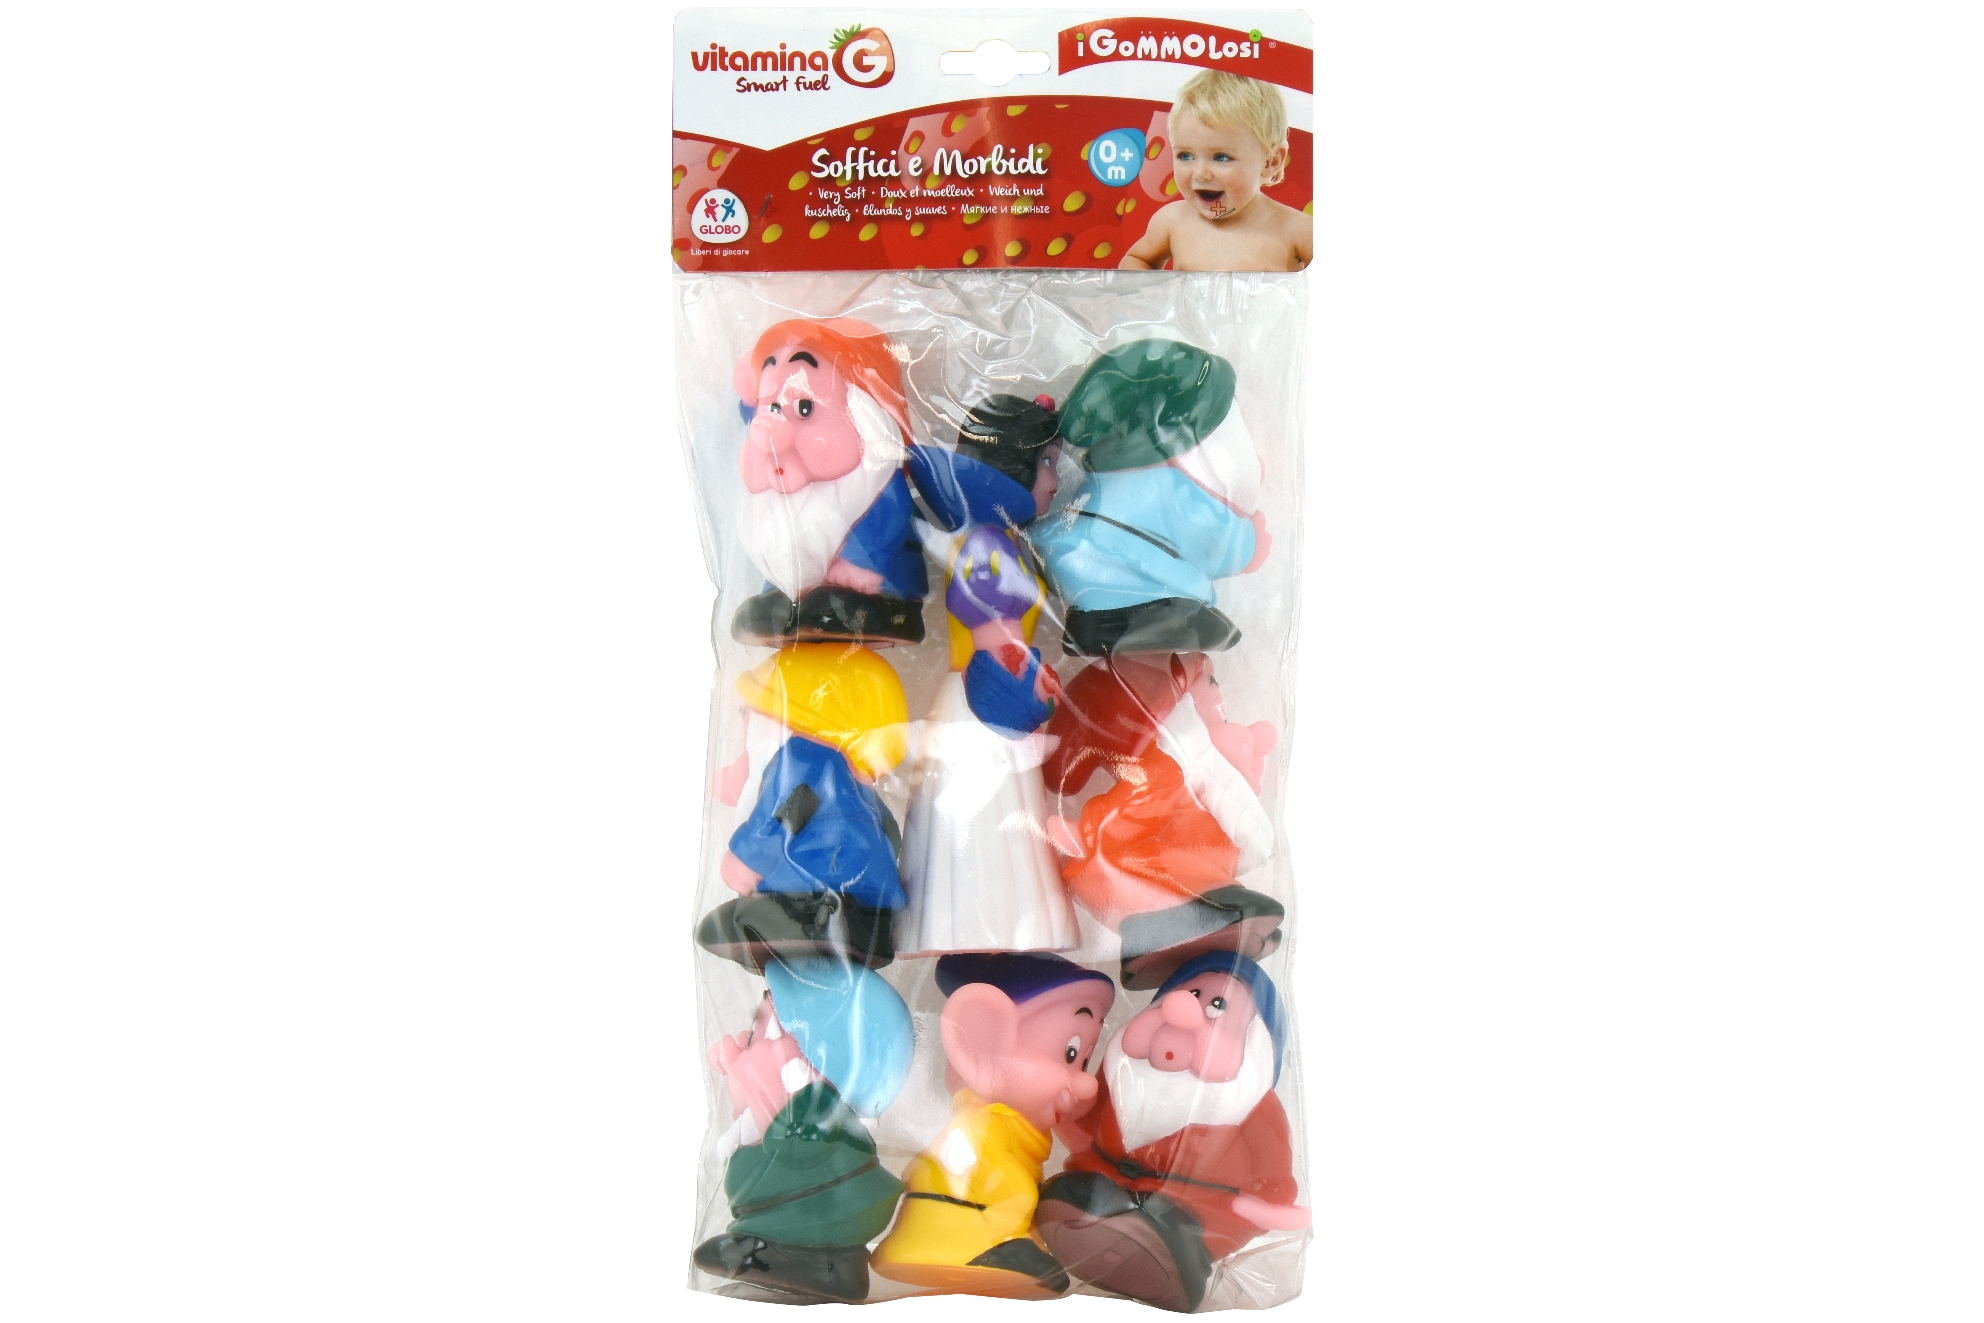 Gommolosi Snow White 8 Pcs W/7 Dwarves